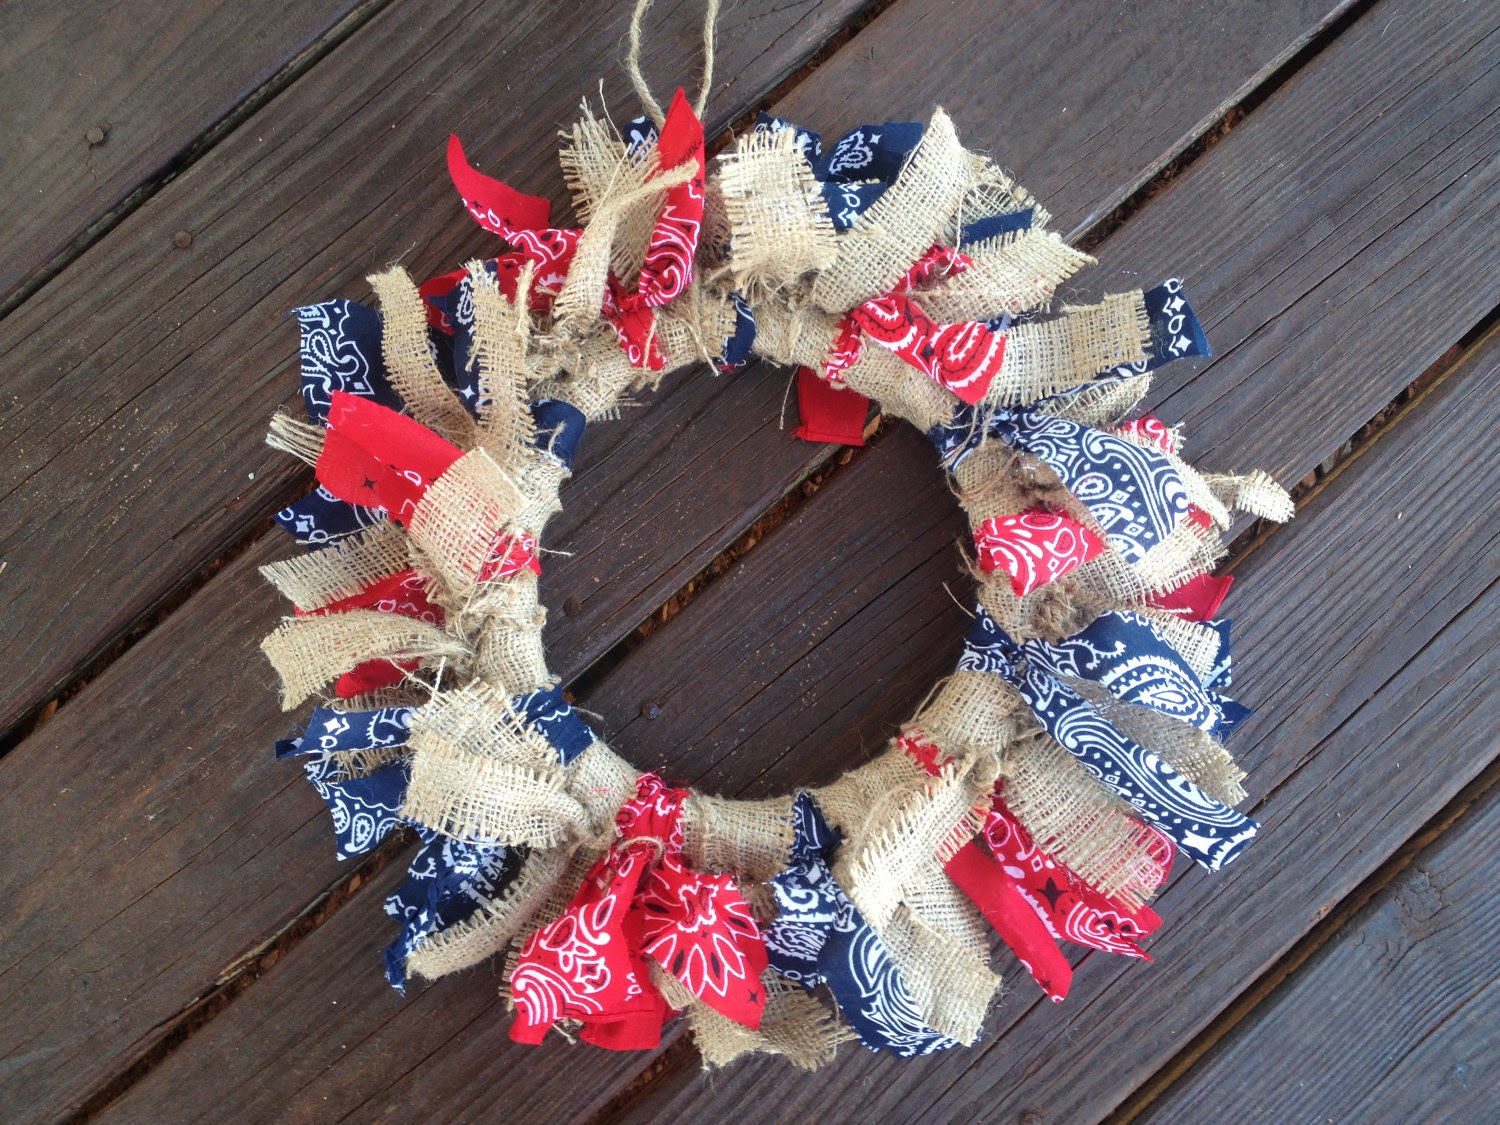 Cowboy Bandana Wreath Rustic Home Decor by CountryBarnBabe